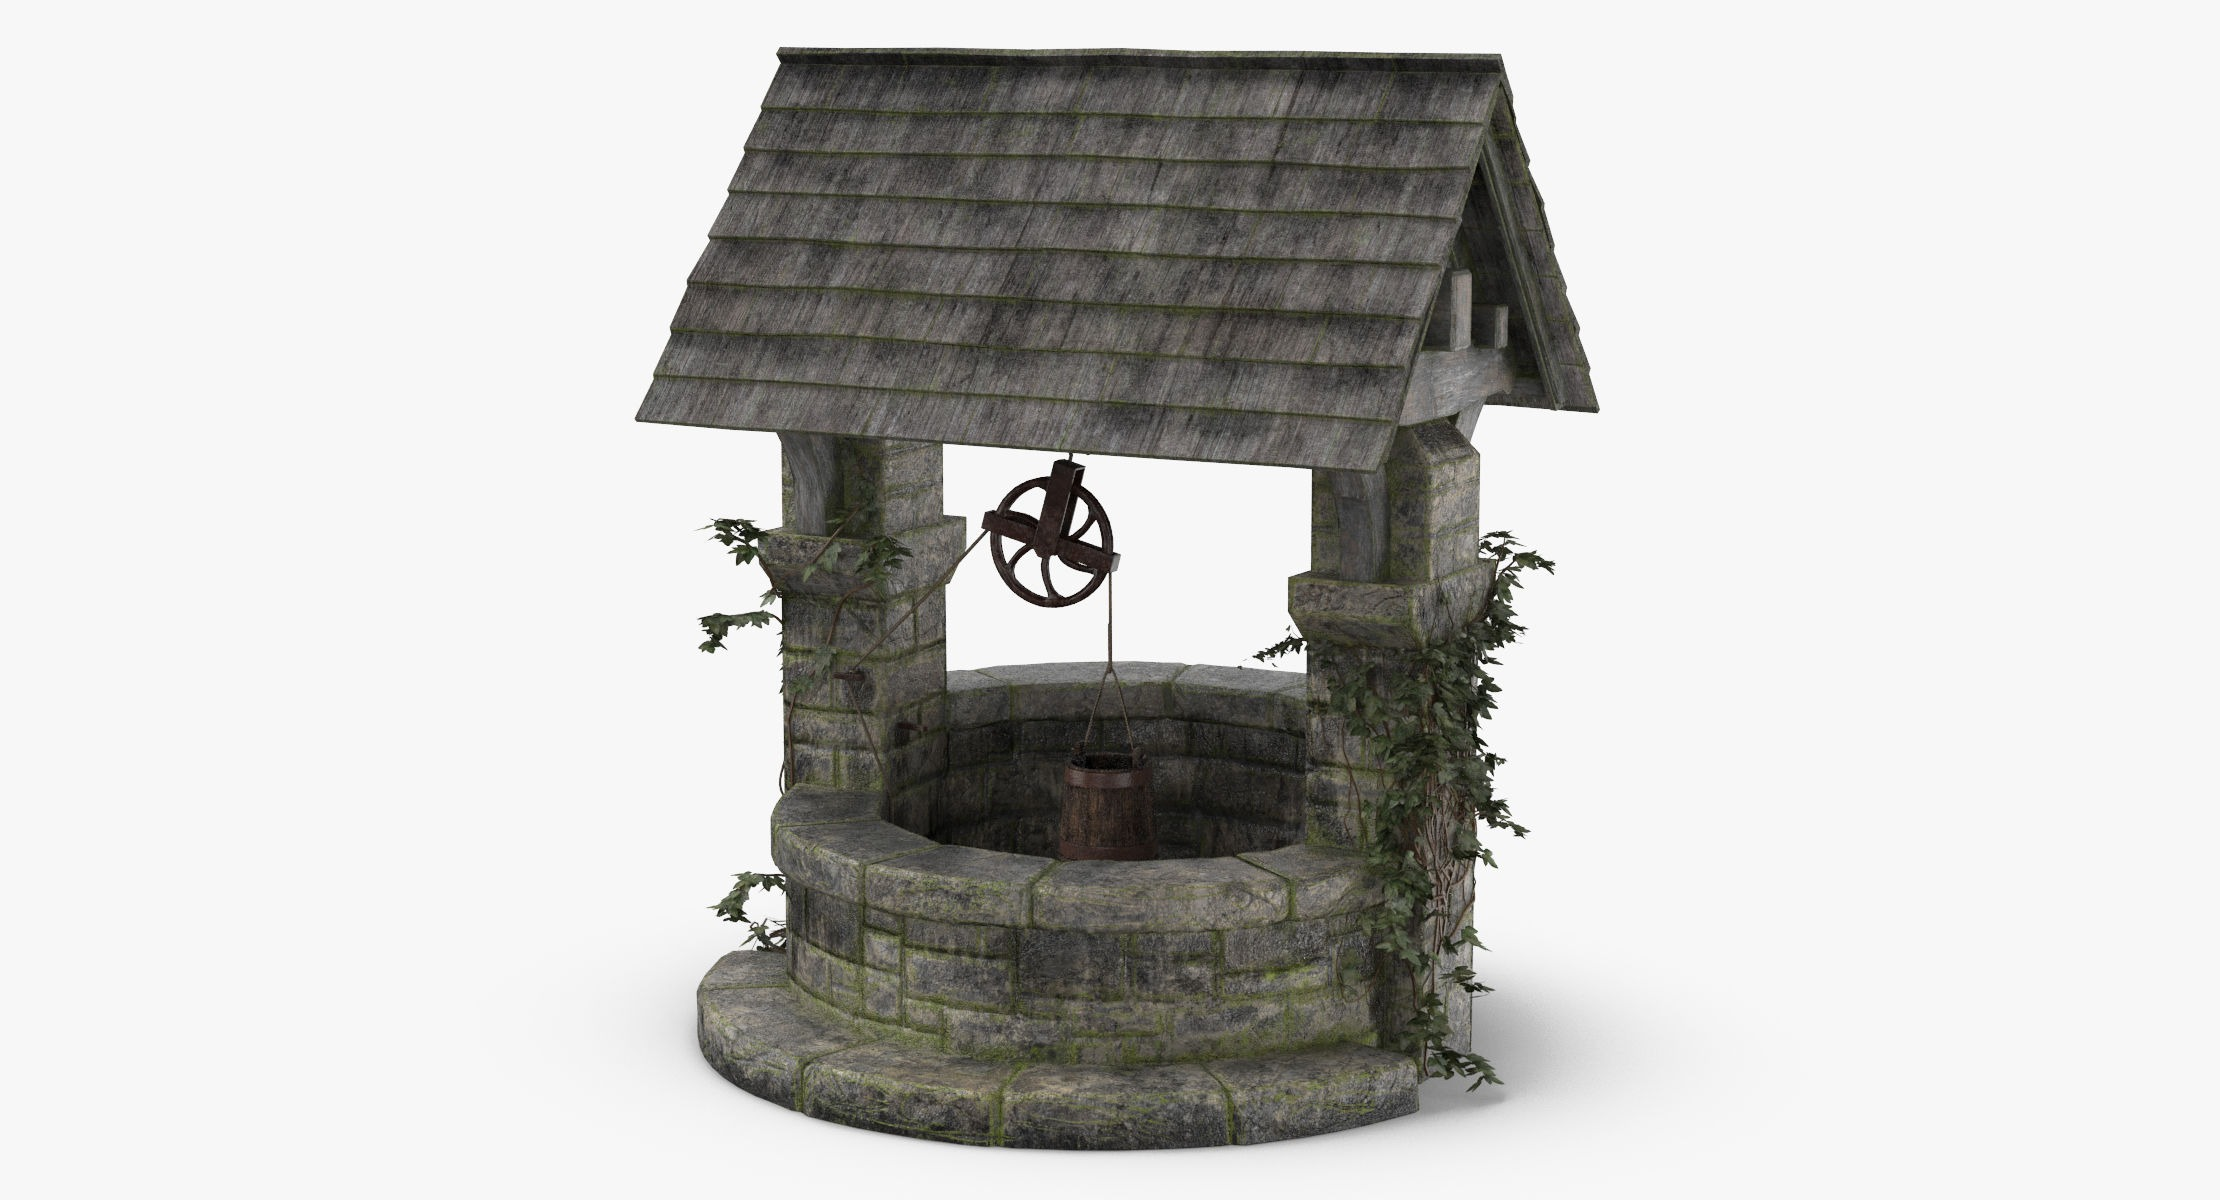 Creepy Wishing Well - reel 1